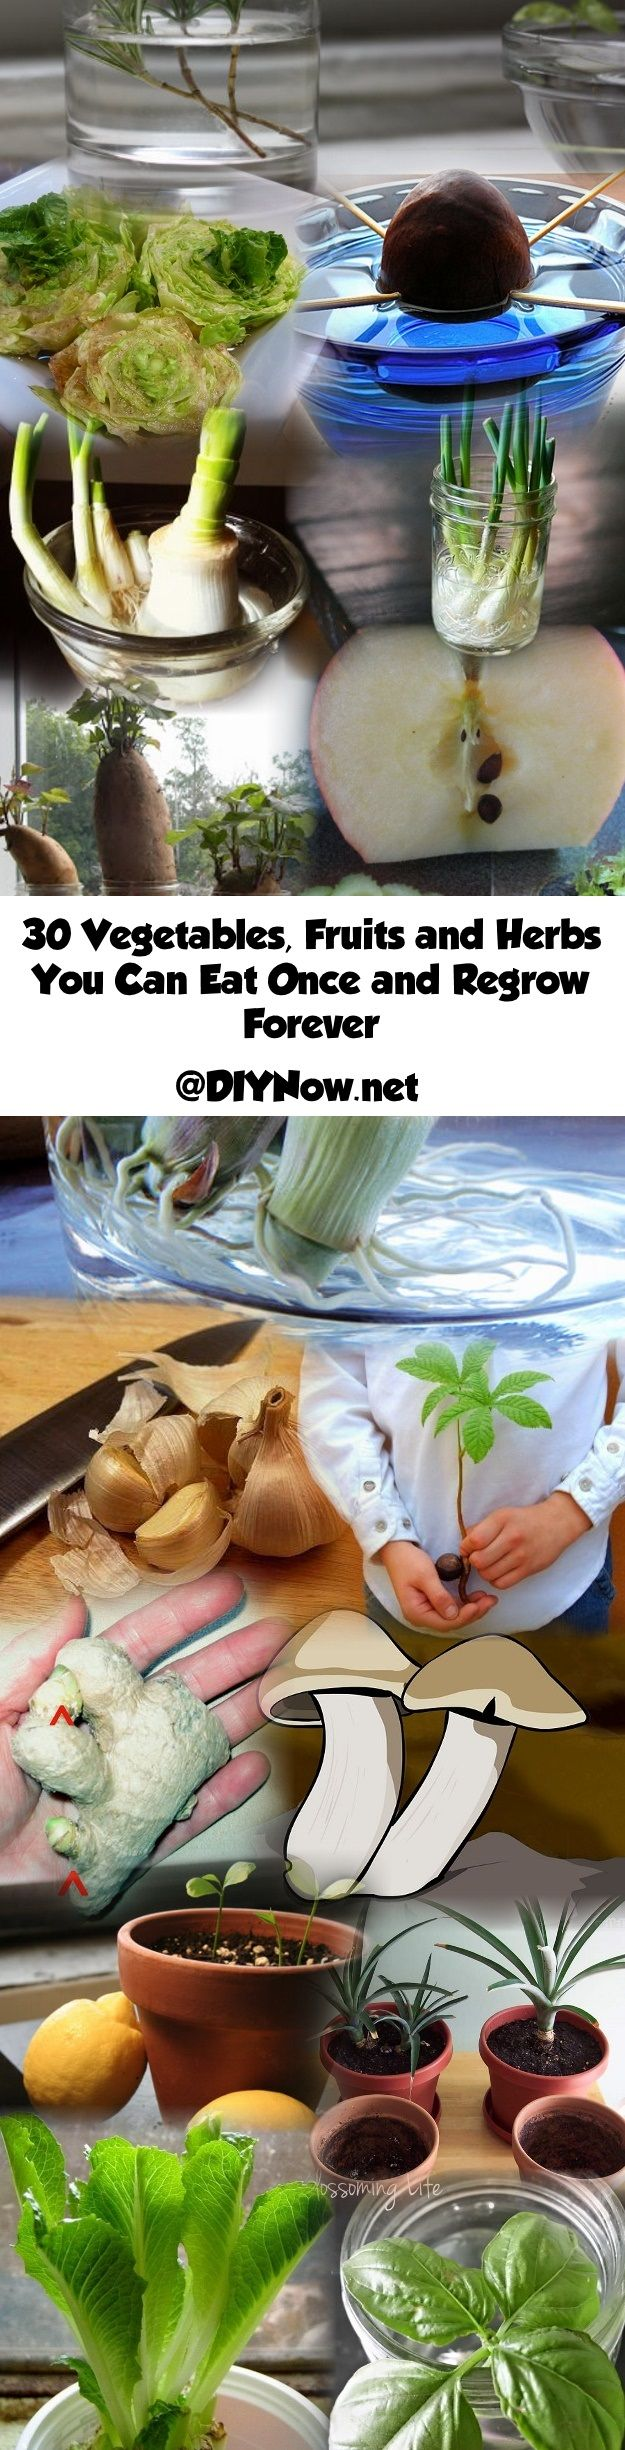 30 Vegetables, Fruits and Herbs You Can Eat Once and Regrow Forever